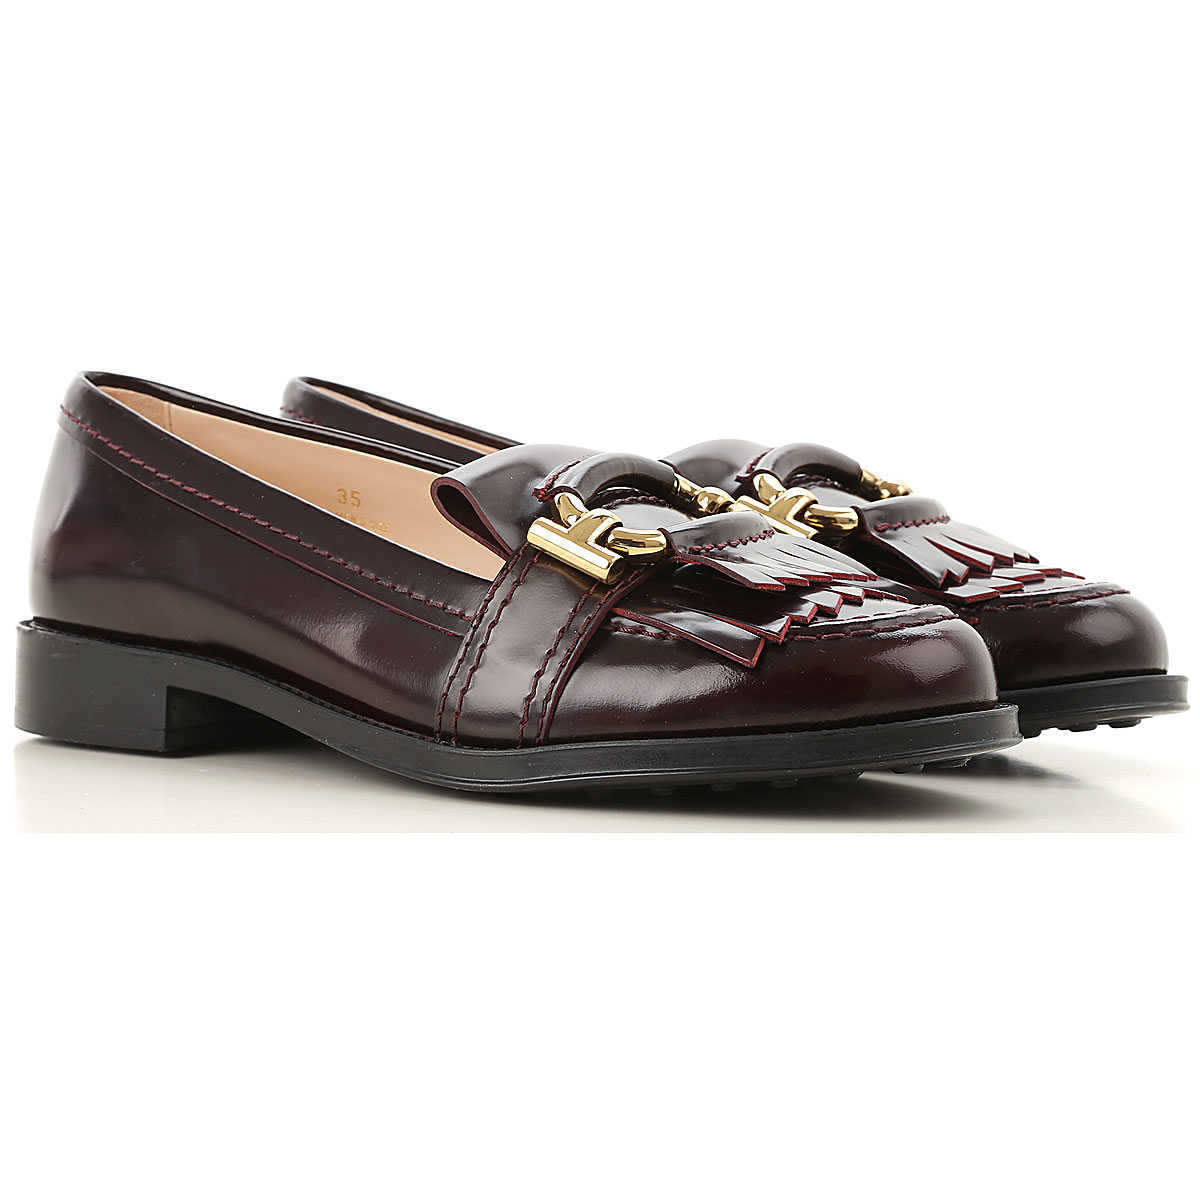 Tods Loafers for Women On Sale Must DK - GOOFASH - Womens FLAT SHOES